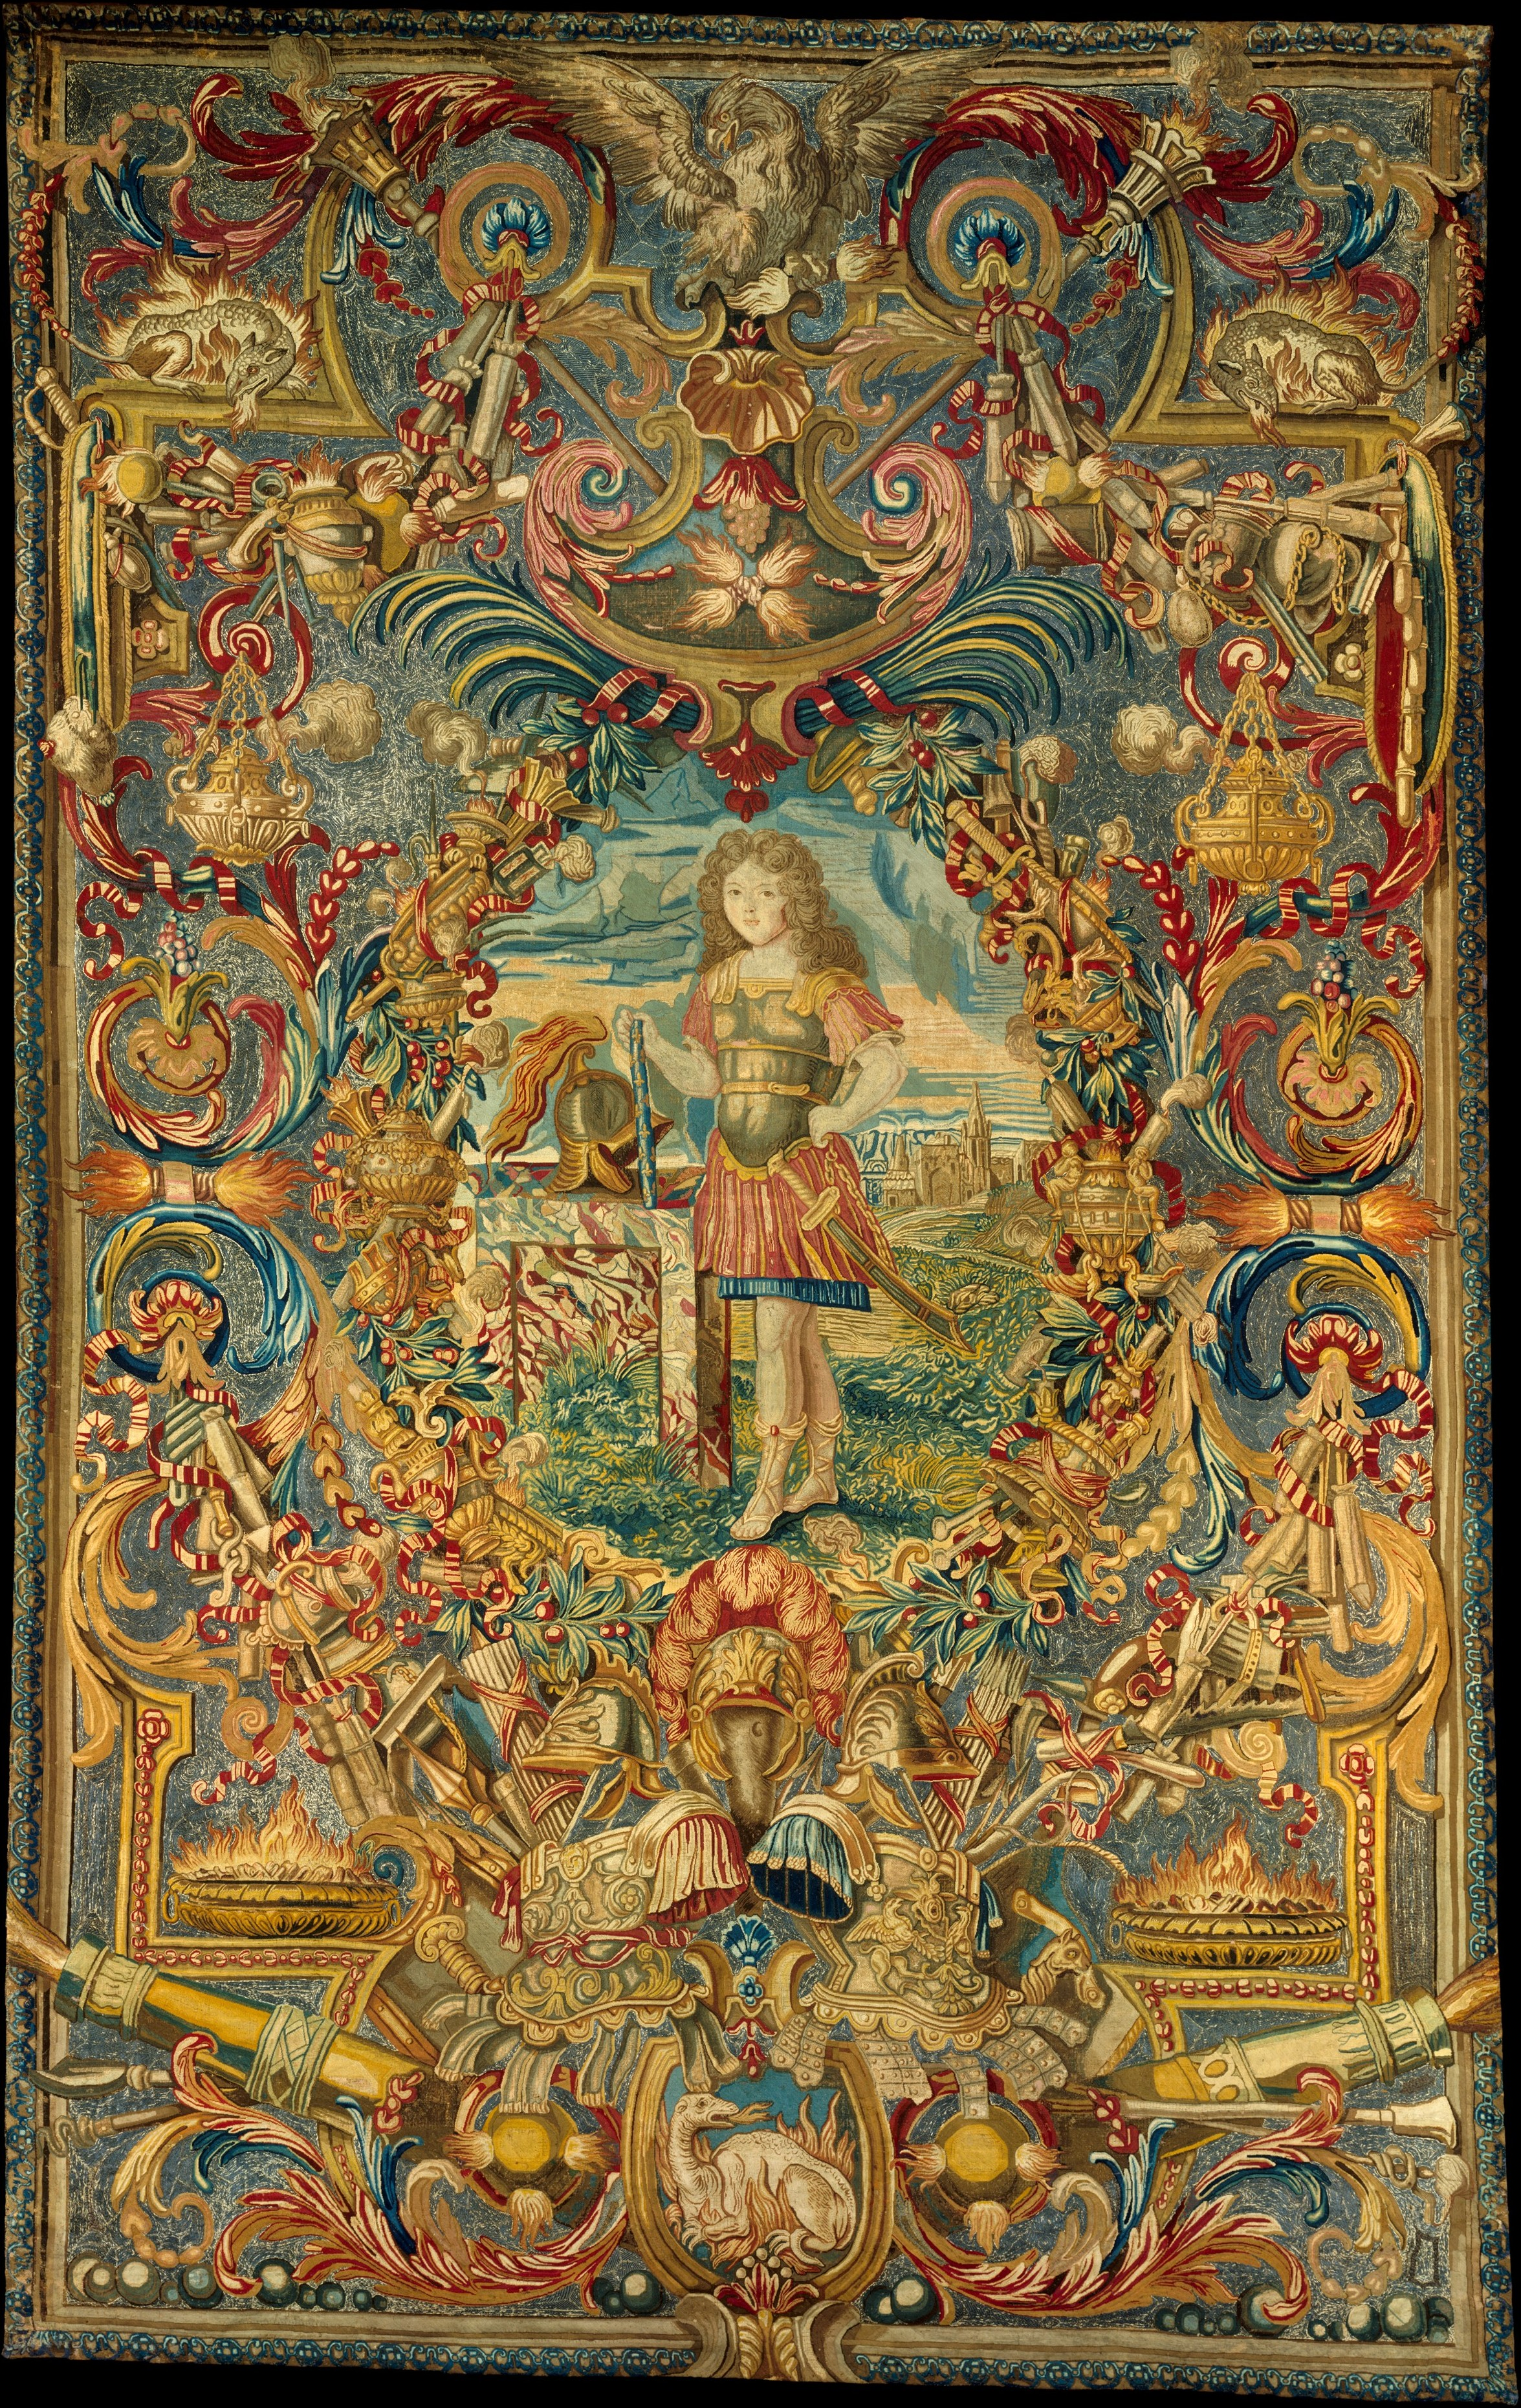 Possibly after a design by Charles Le Brun